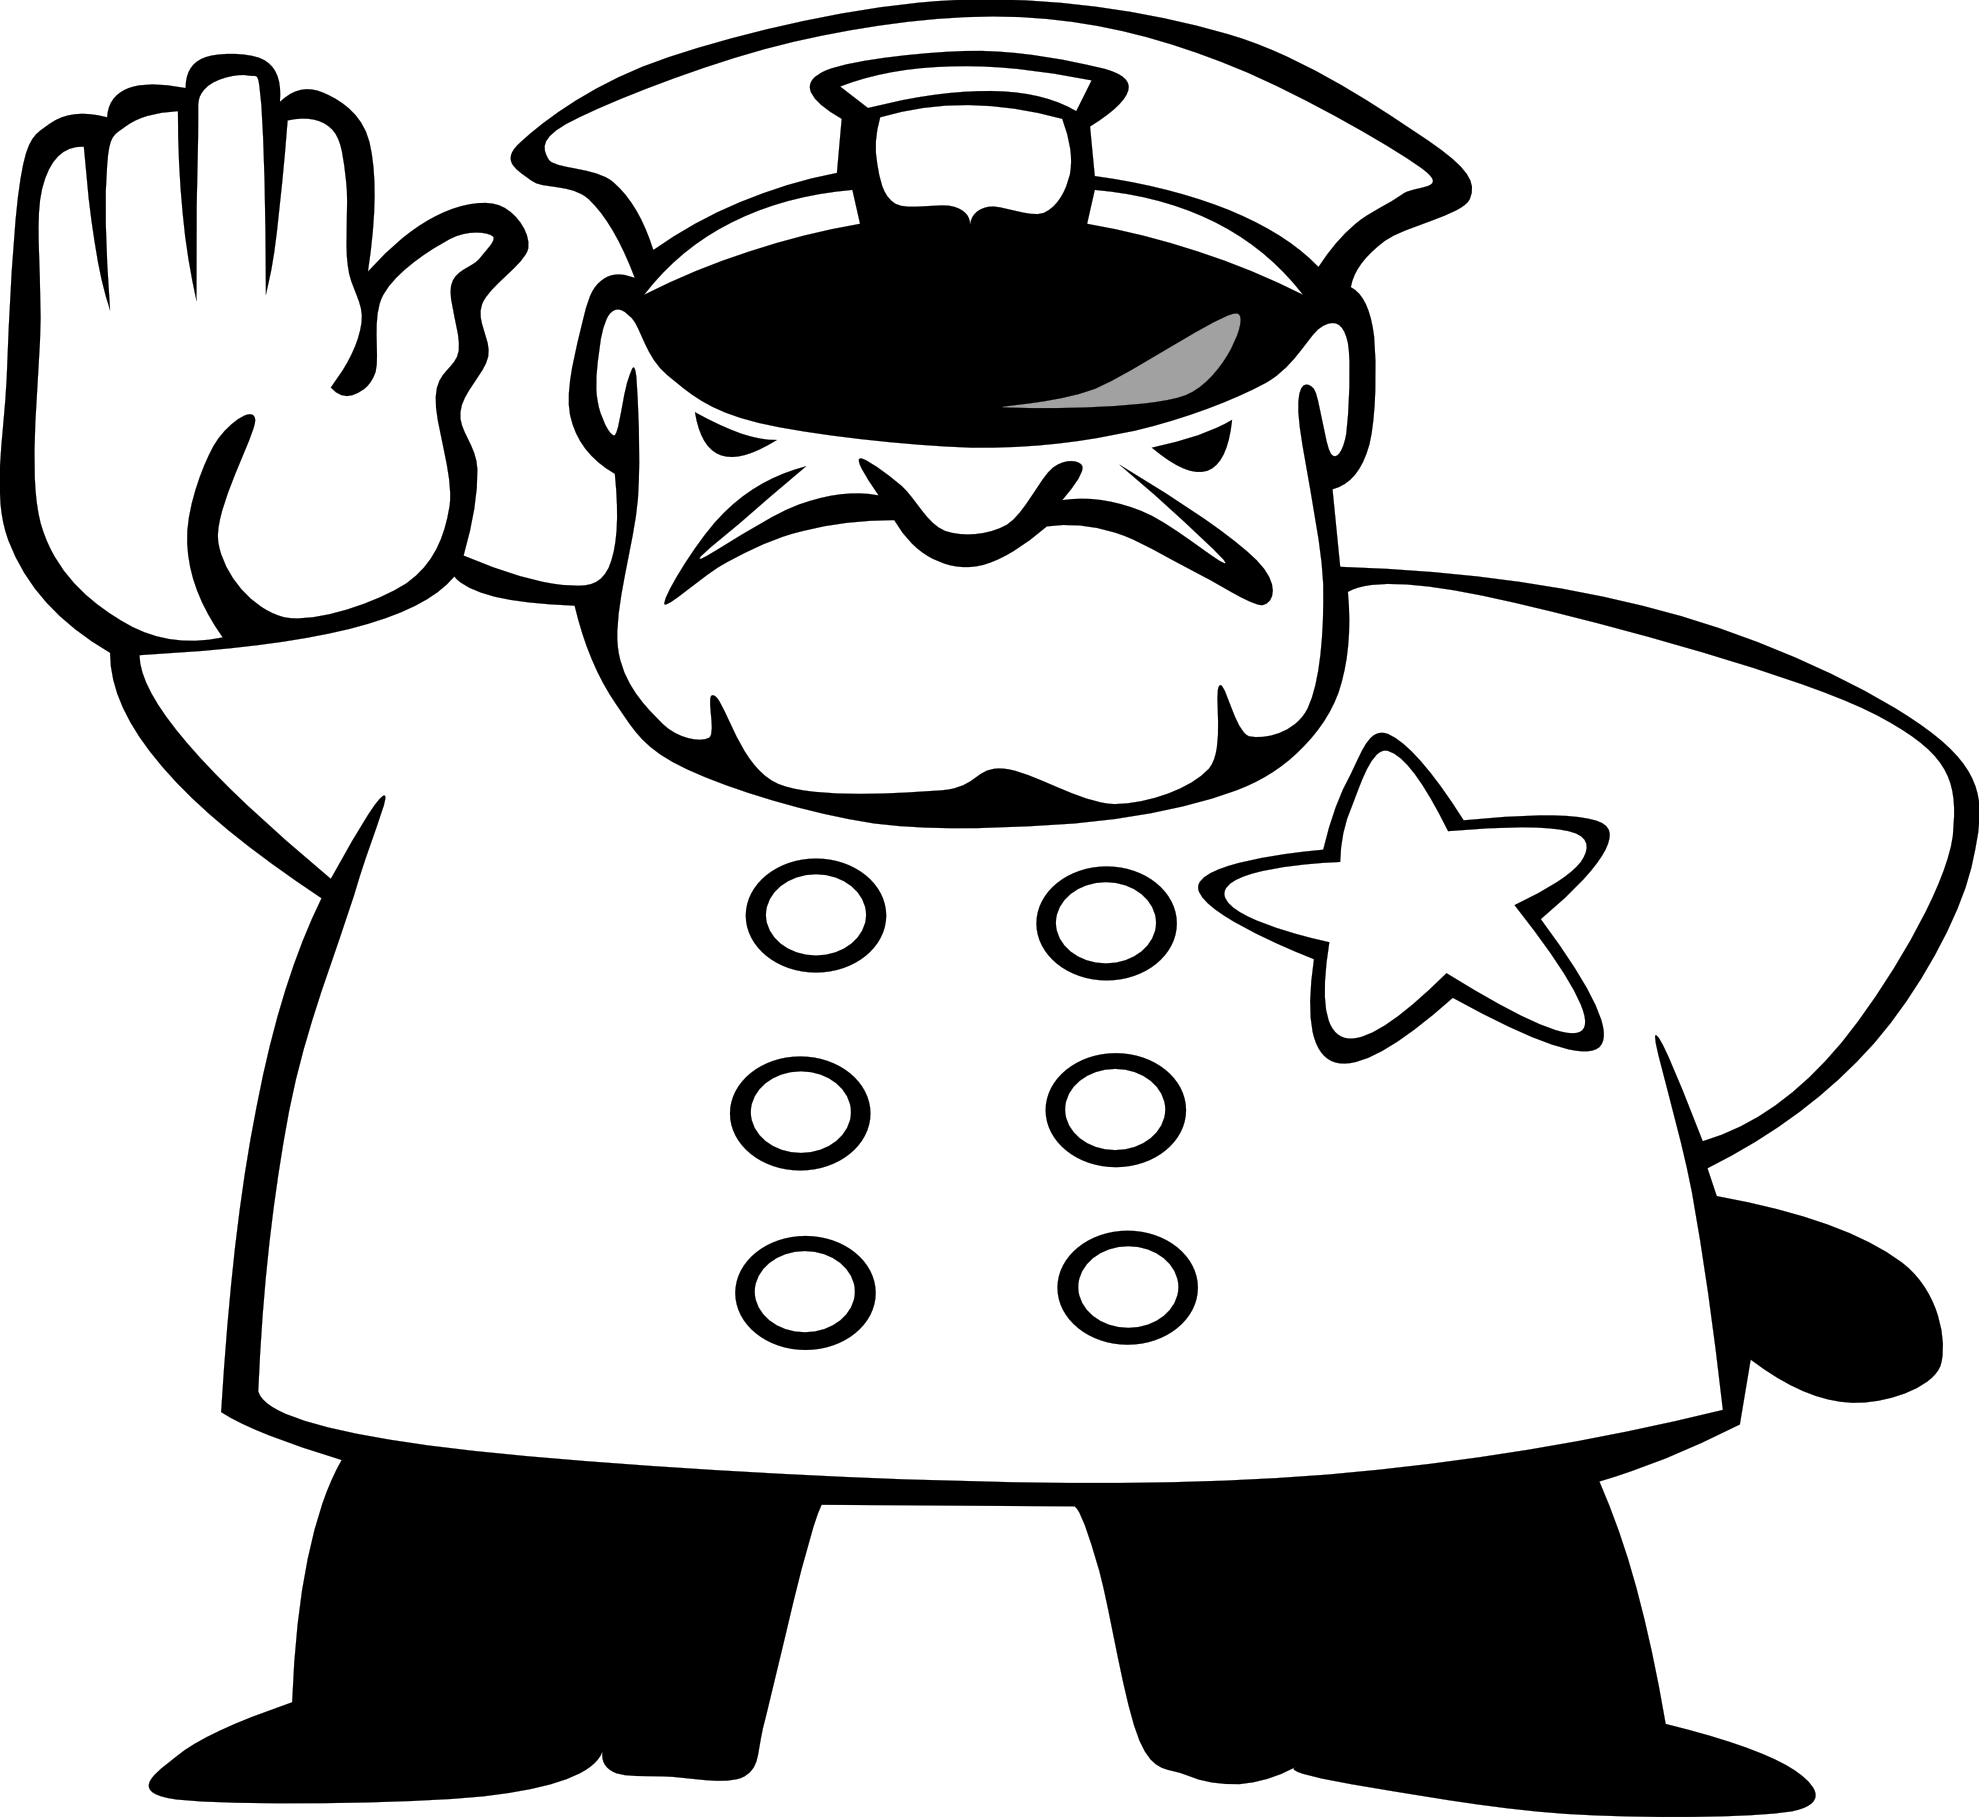 Free Police Clipart Black And White, Download Free Clip Art.